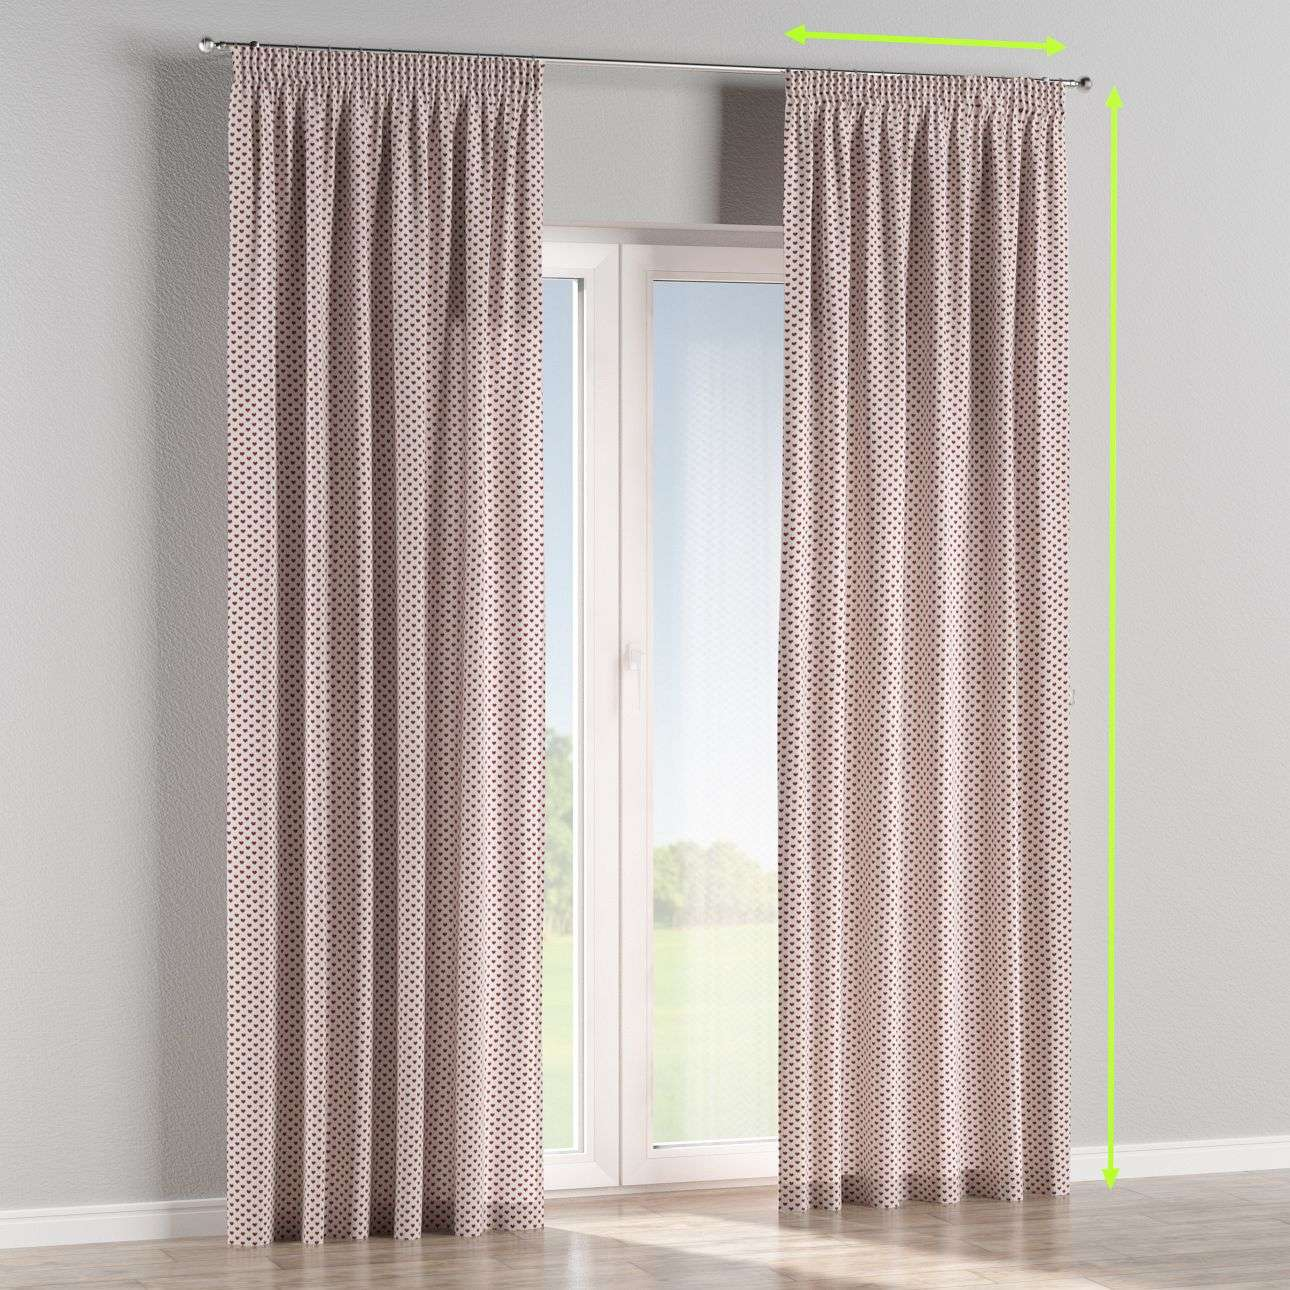 Pencil pleat lined curtains in collection Christmas , fabric: 630-04